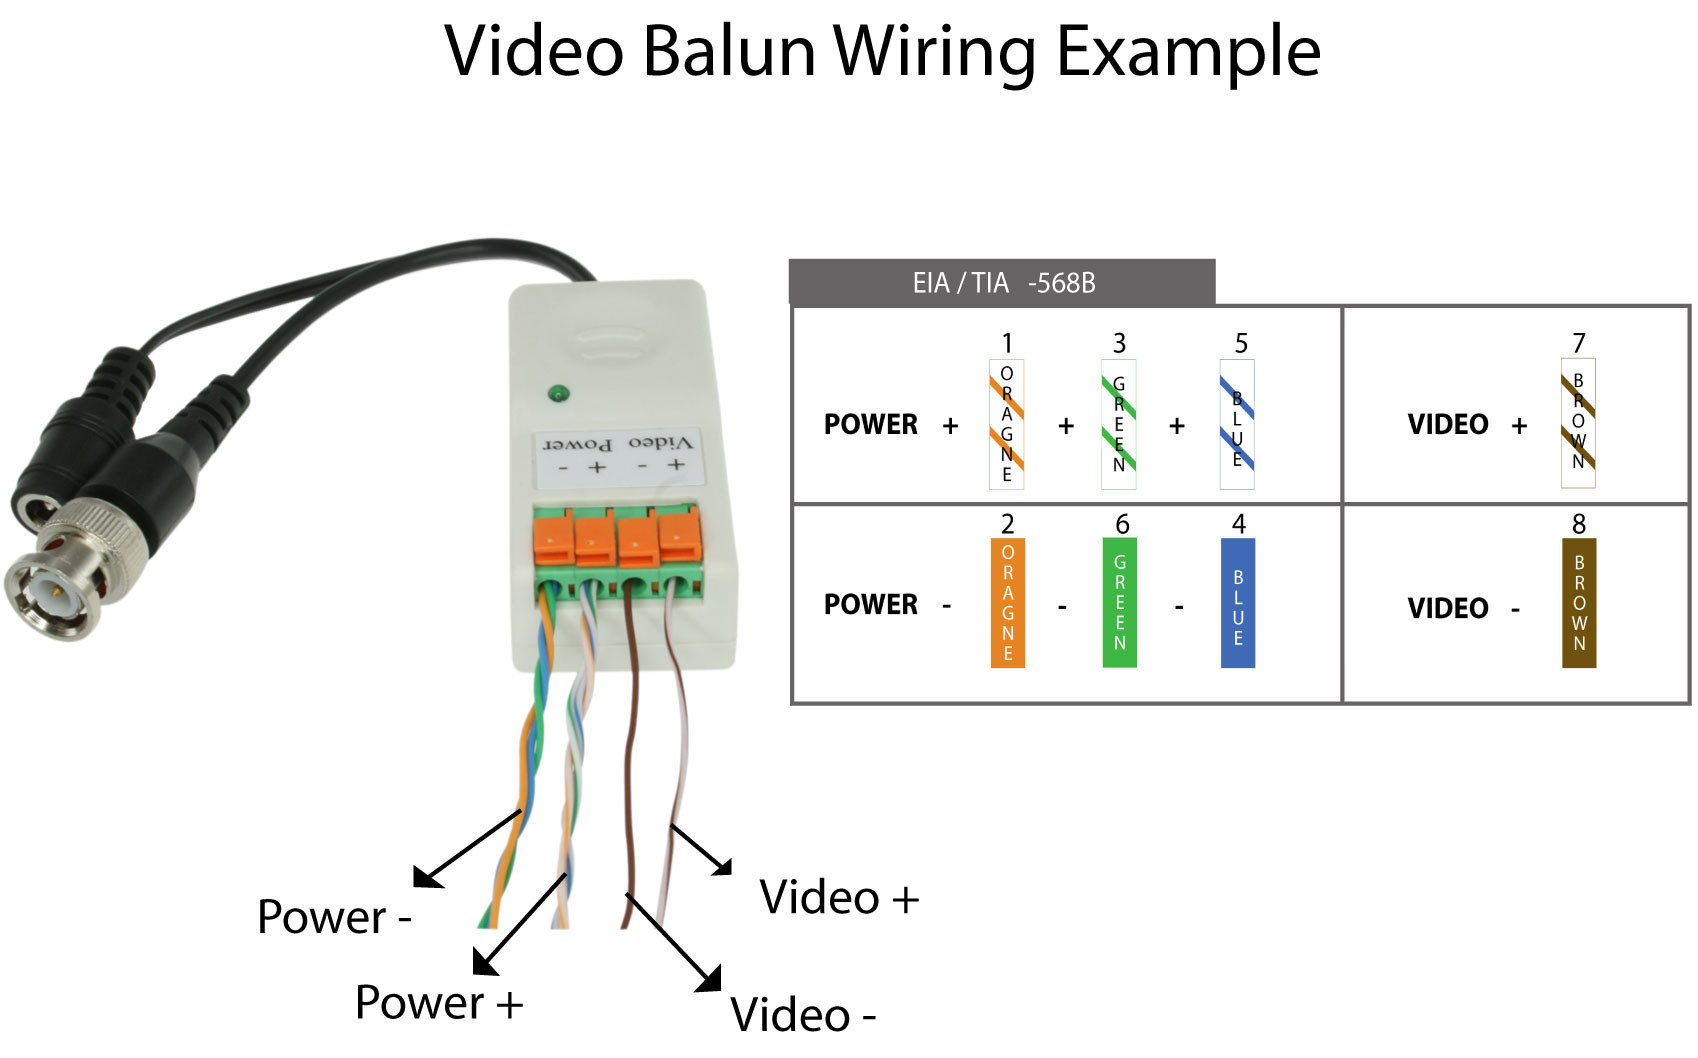 Bunker Hill Camera Wire Diagram - Simple Wiring Diagram - Bunker Hill Security Camera Wiring Diagram